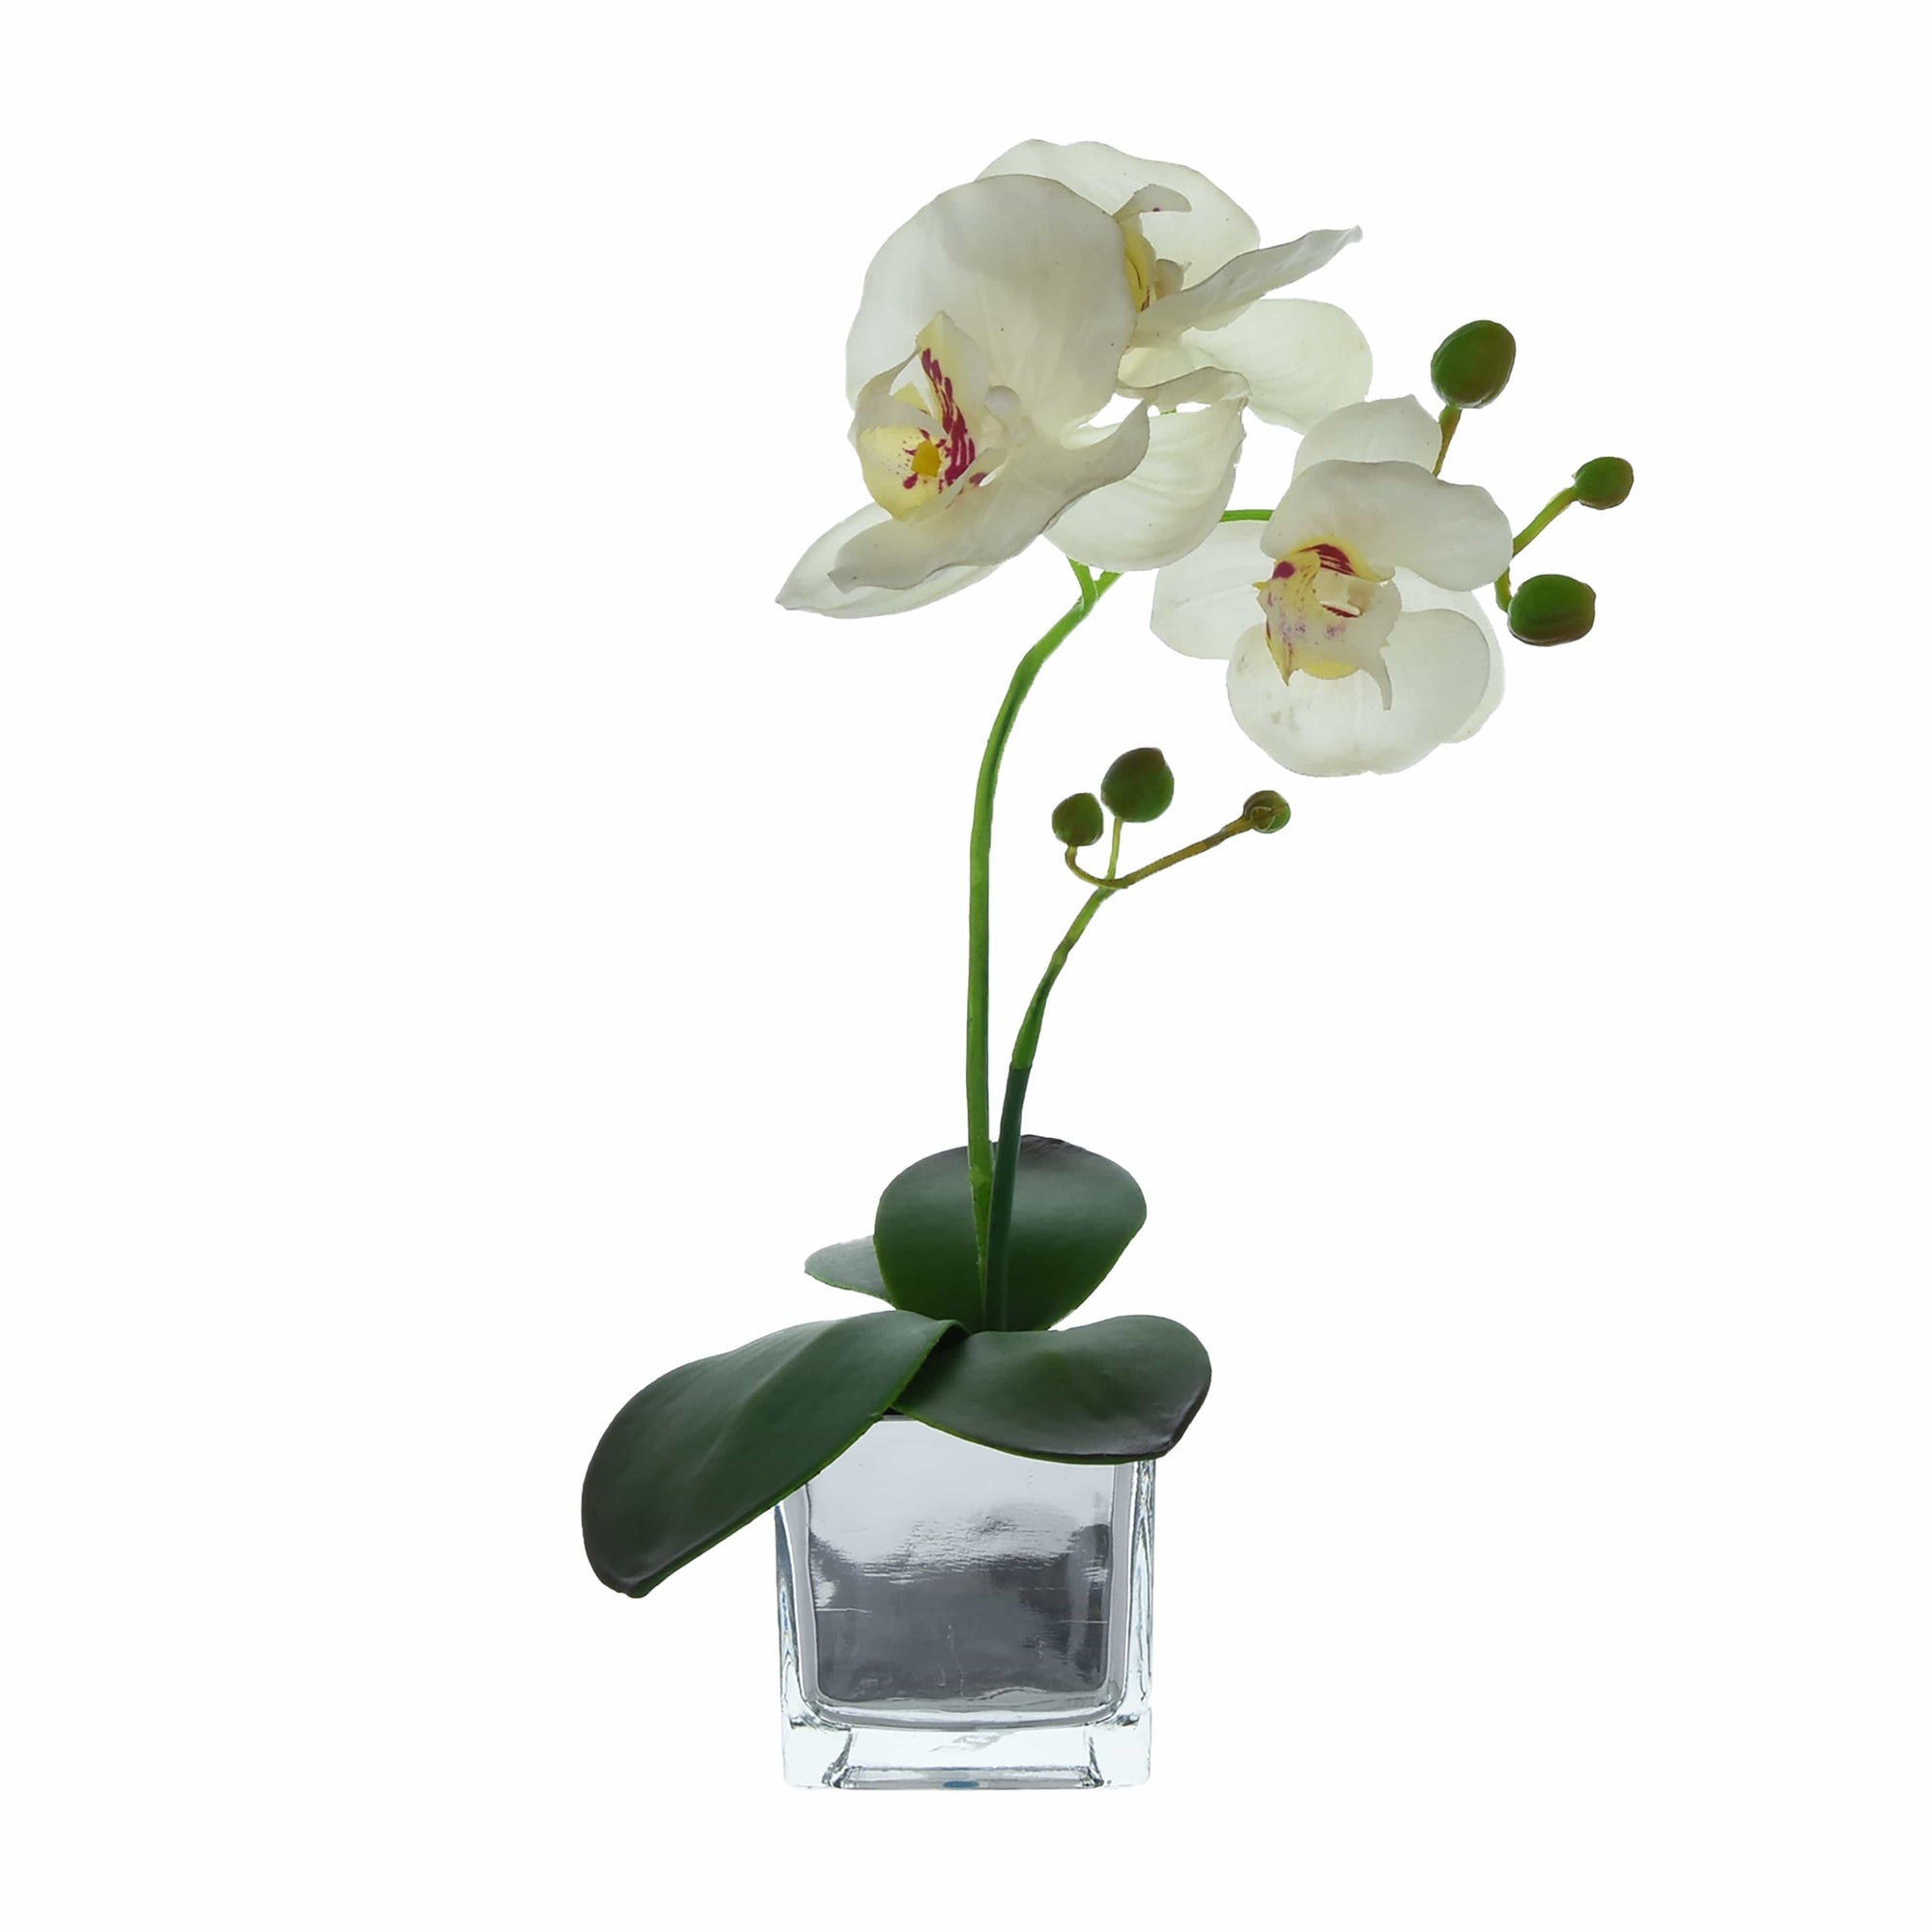 Candlelight Home Artificial Plants & Flowers The Flower Patch White Orchid in Glass Pot 34cm 6PK